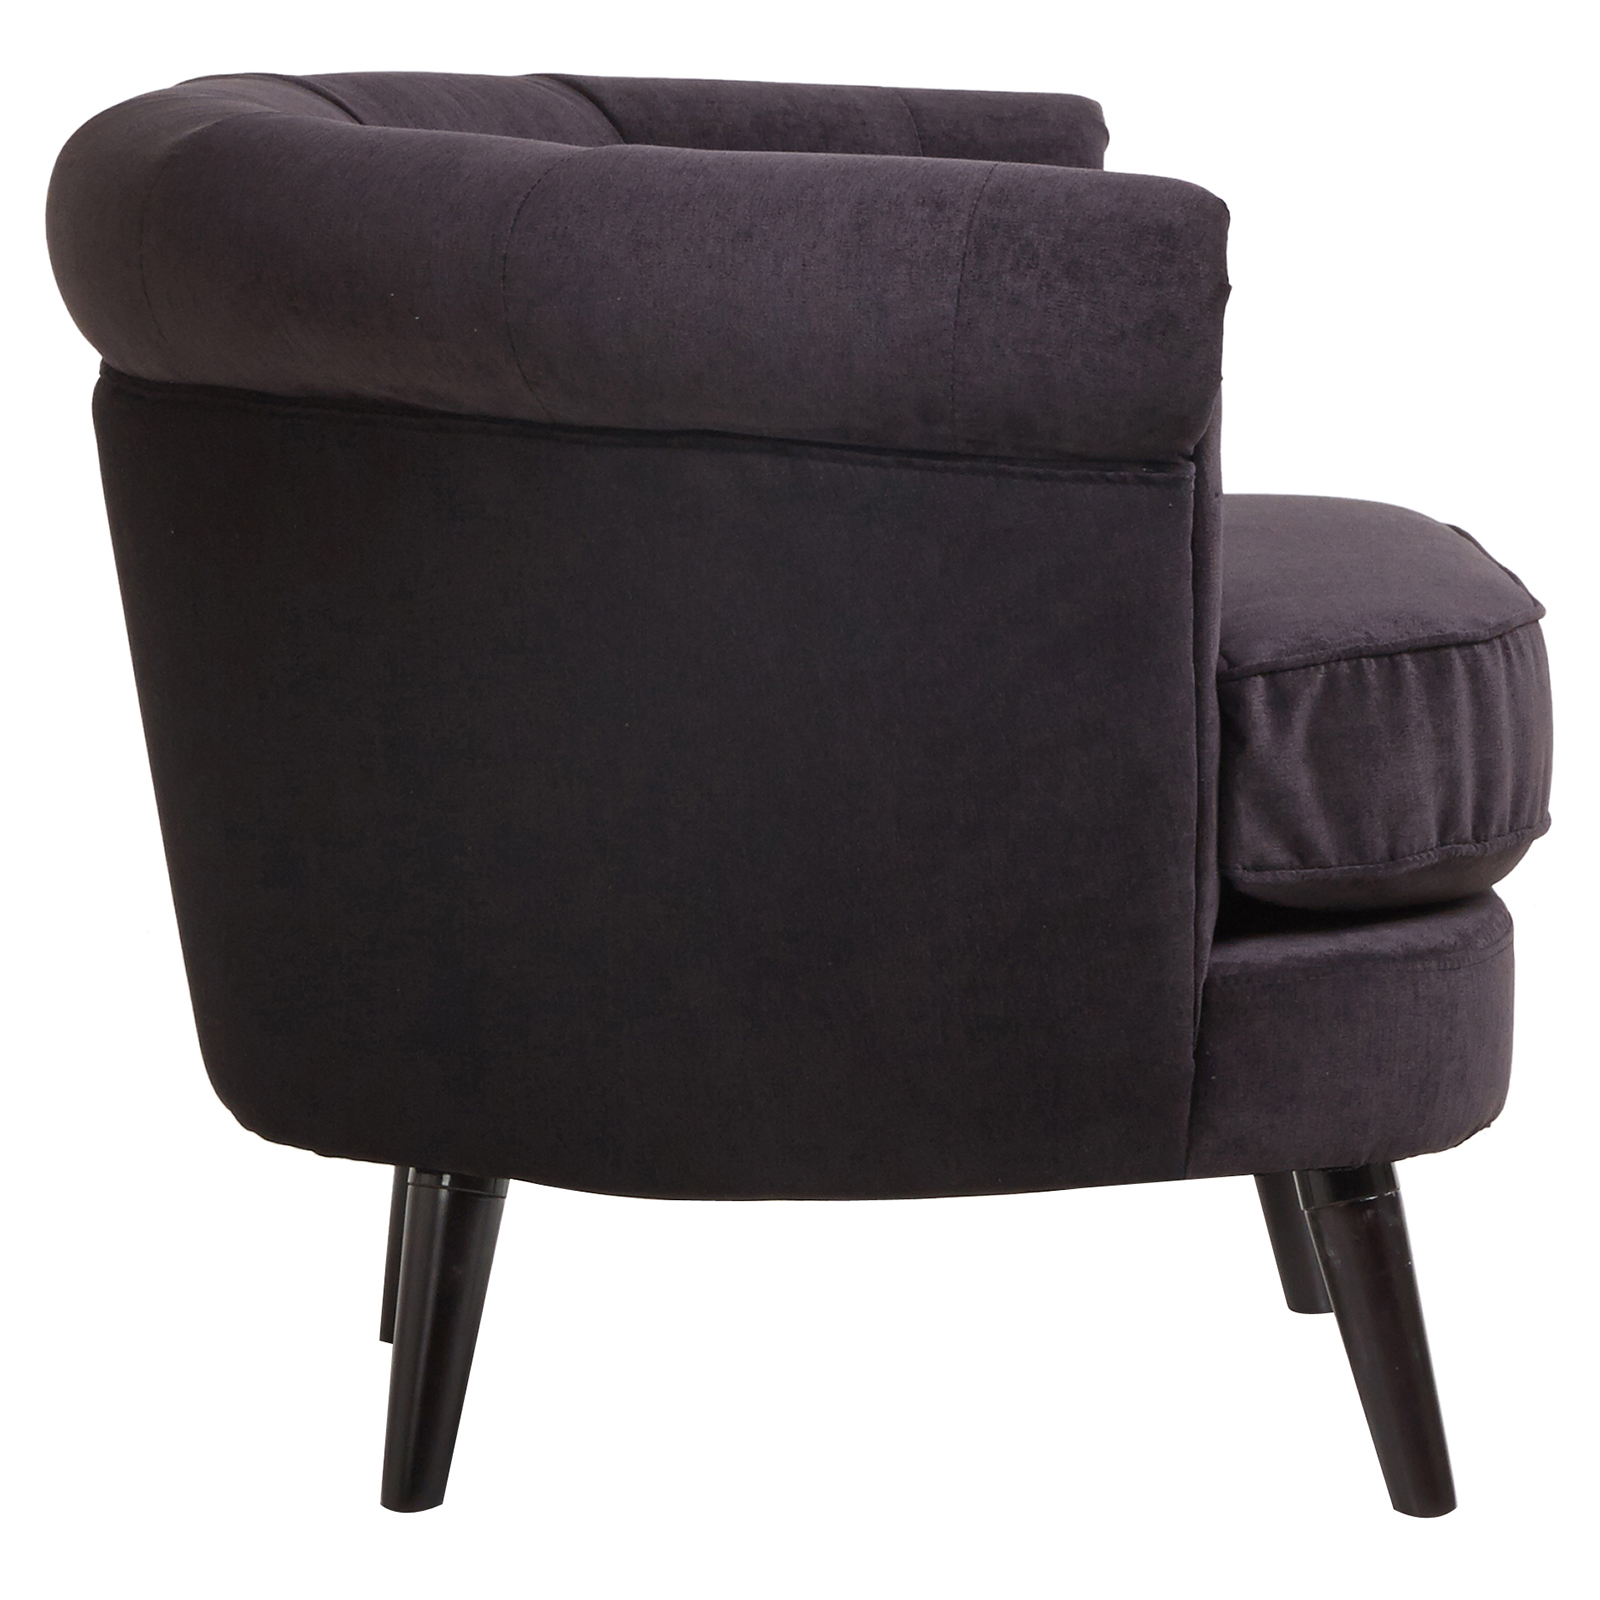 black chair covers ebay balanced active sitting armchair 39olivia 39 design wooden frame fabric